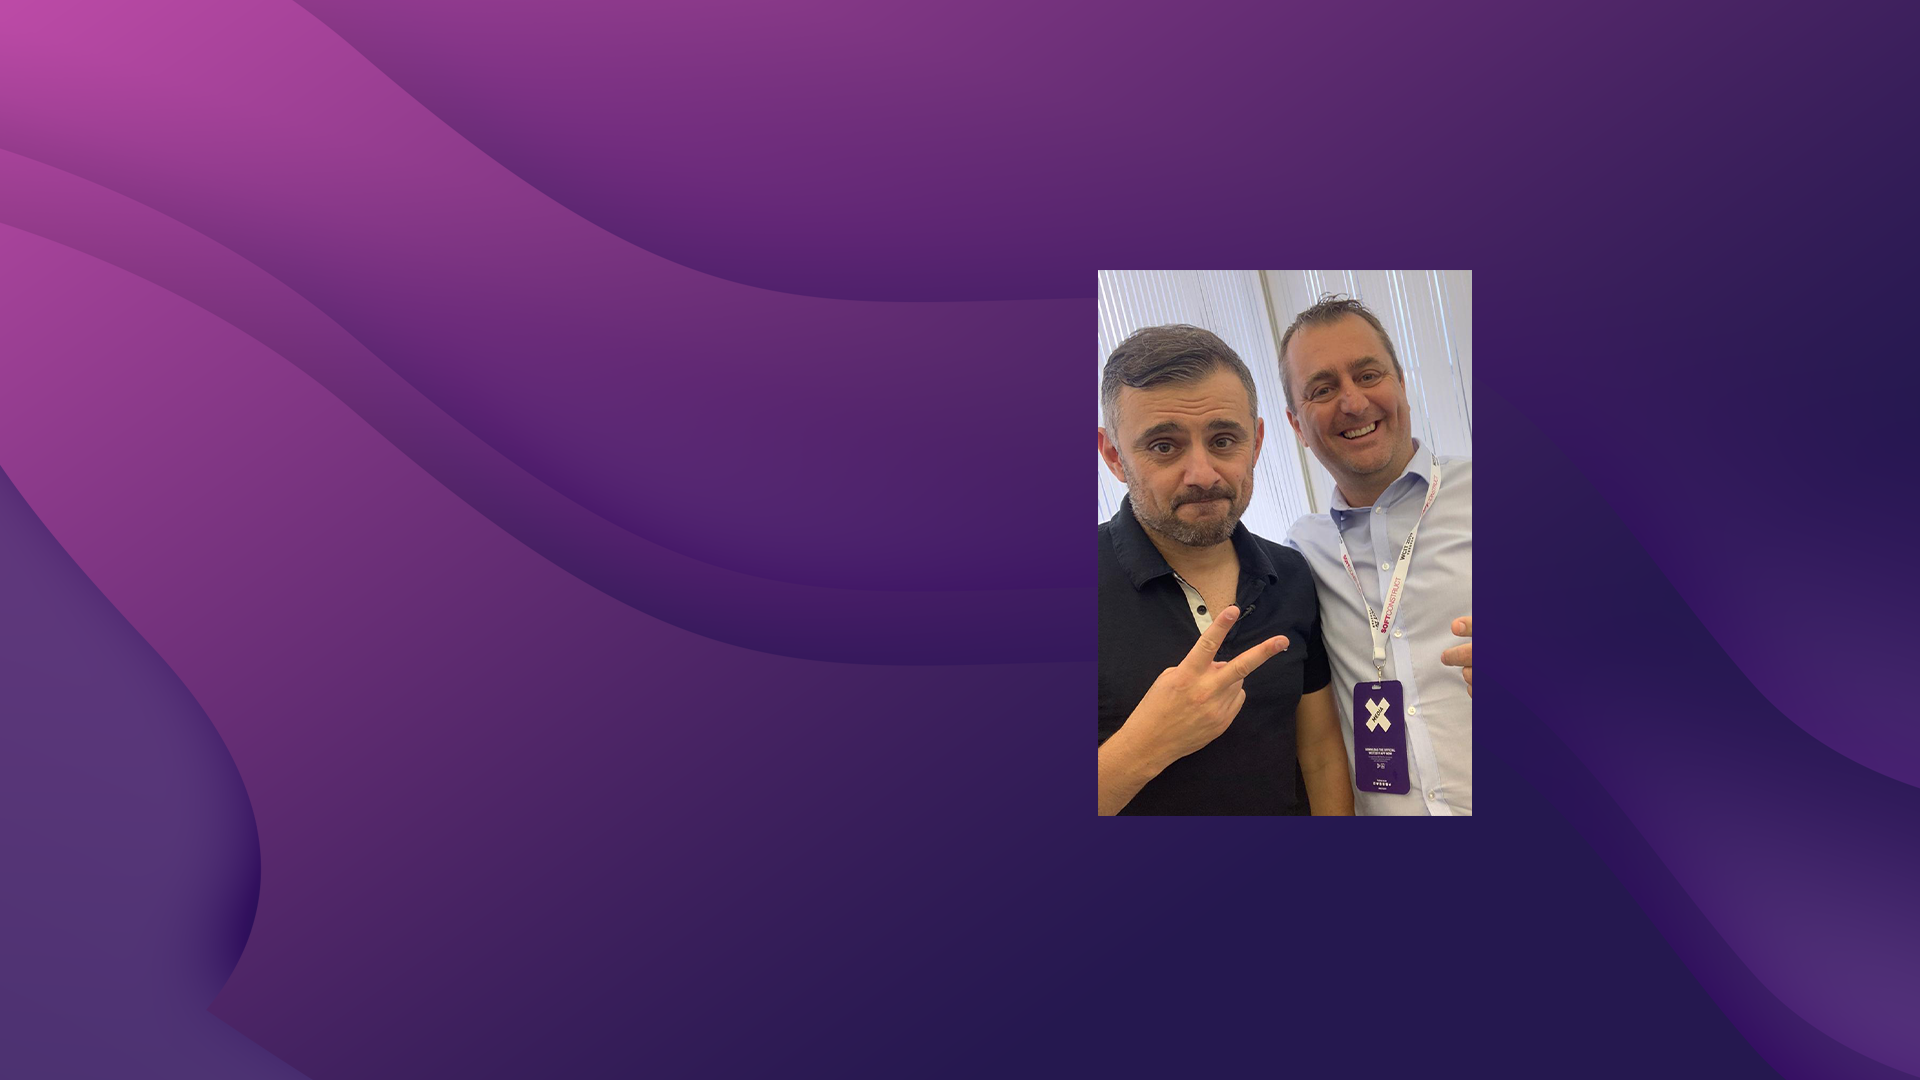 989: Gary Vaynerchuk – From Vegas to Armenia, A Chat With Gary Vee